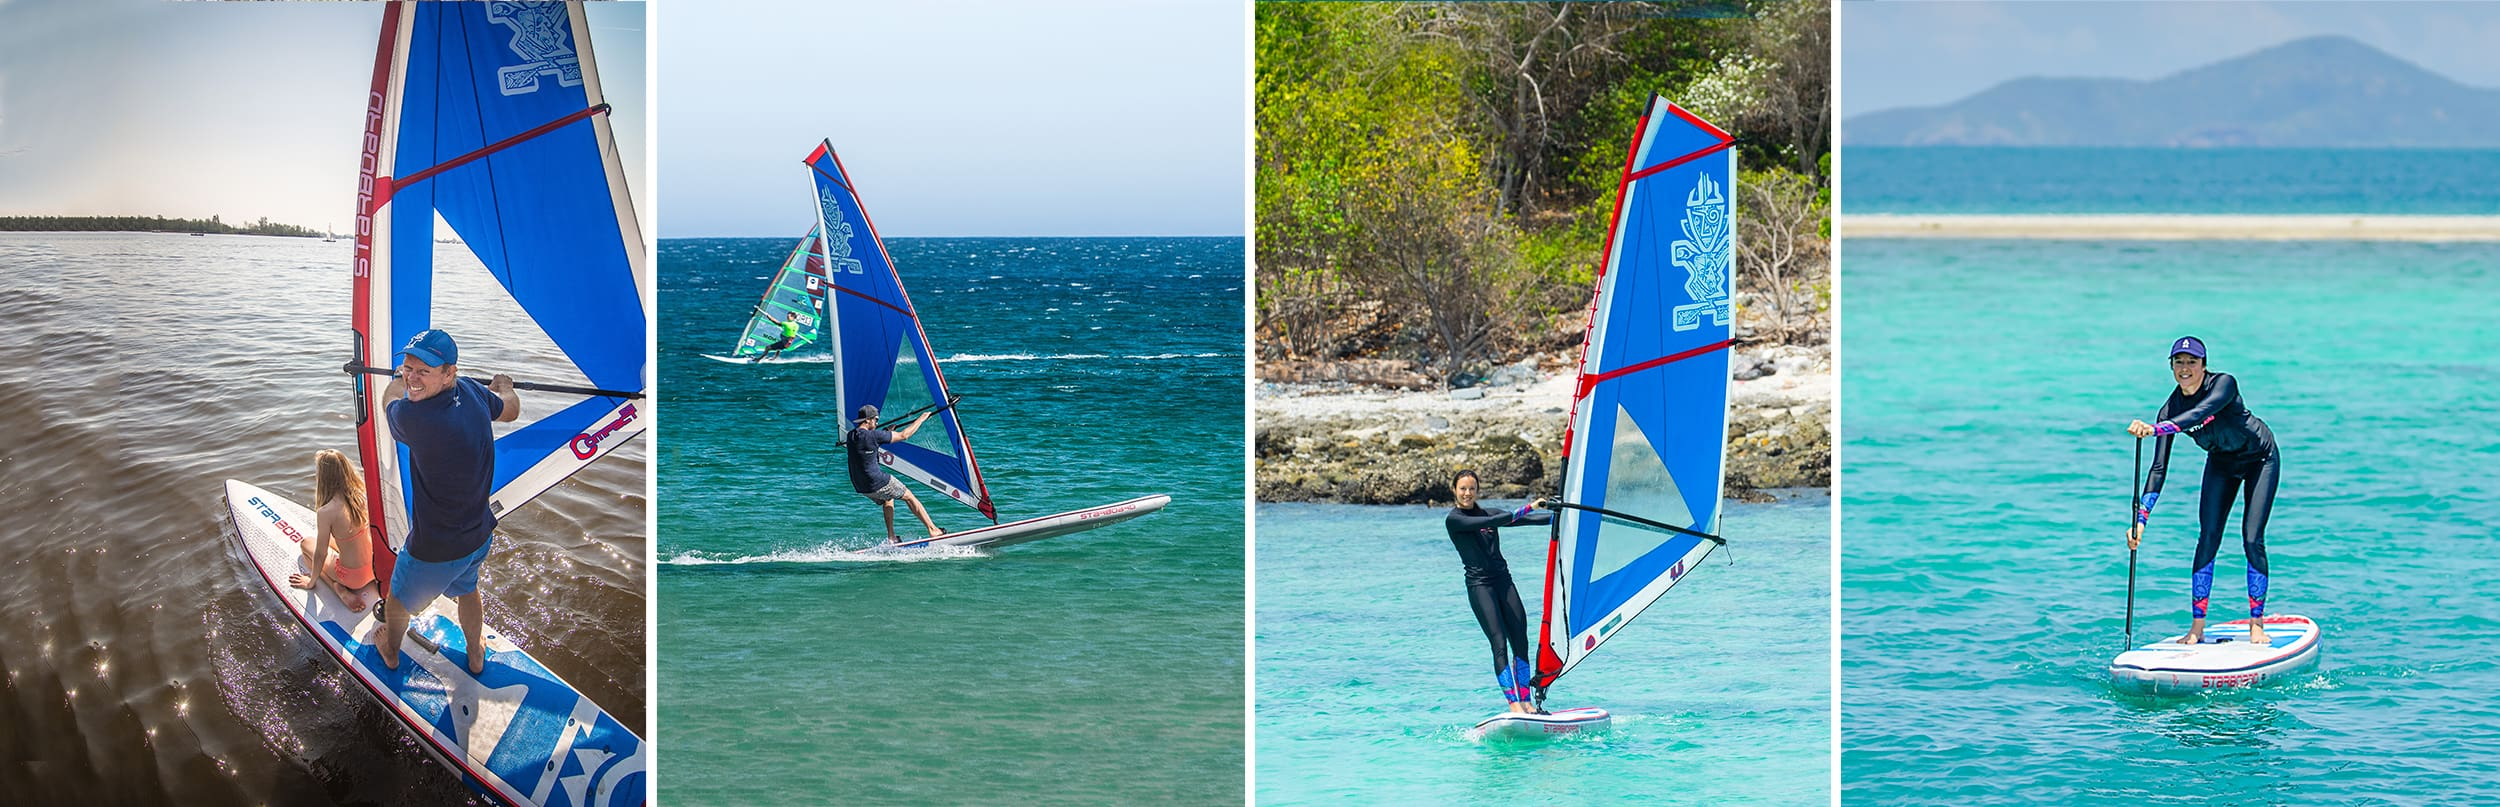 SUP Windsurfing inflatable 2020 - Starboard Windsurfing